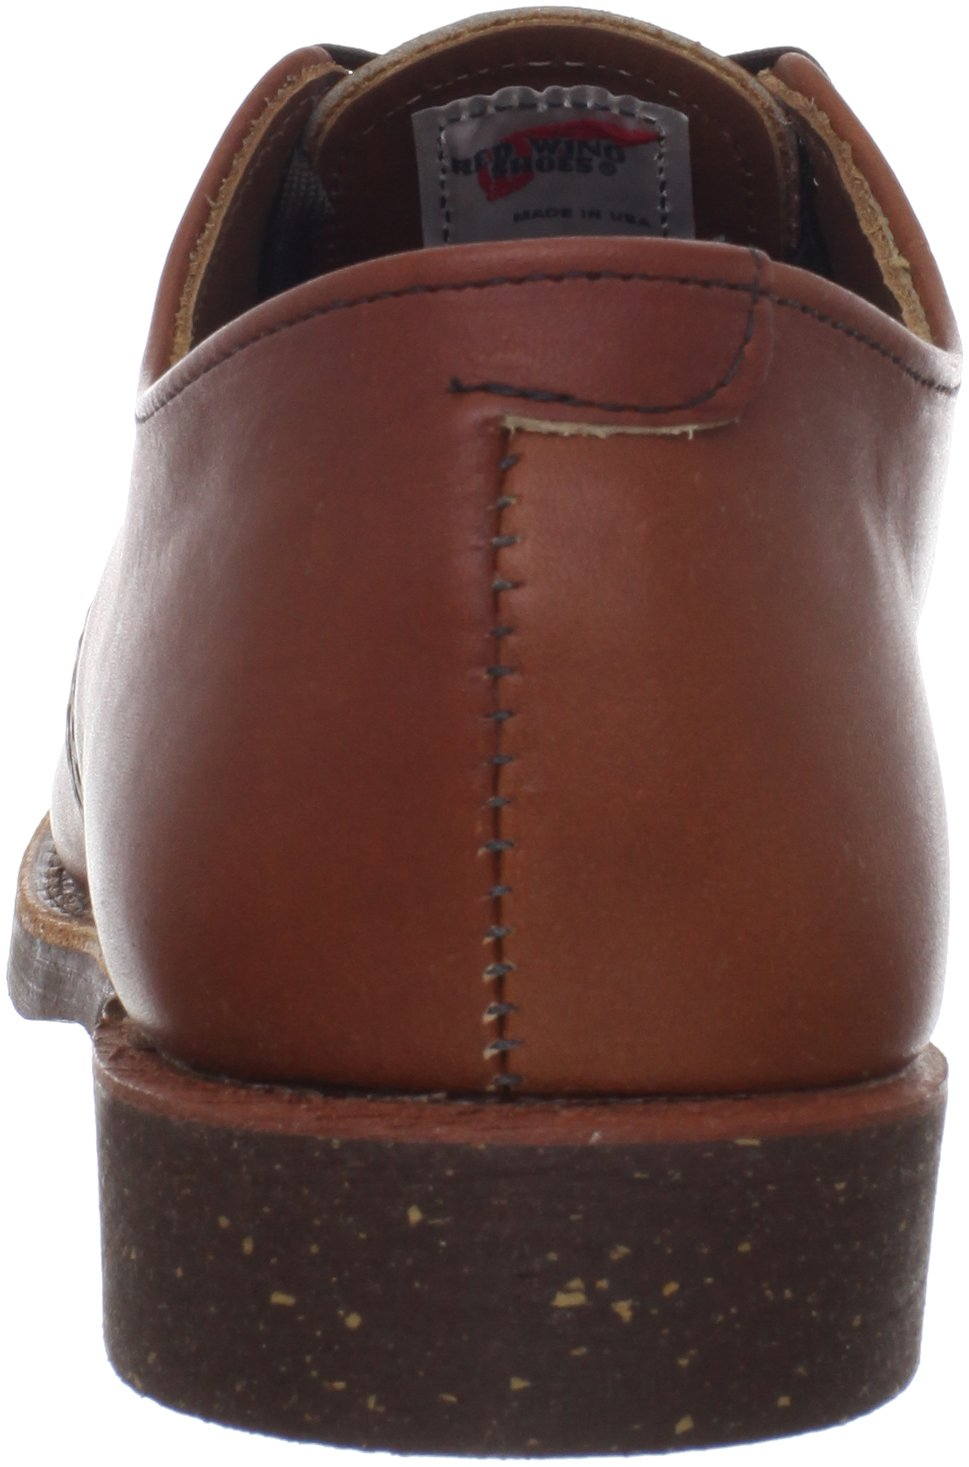 Red Wing Heritage Men's Work Oxford Shoe,Brick,10 D(M) US by Red Wing (Image #2)